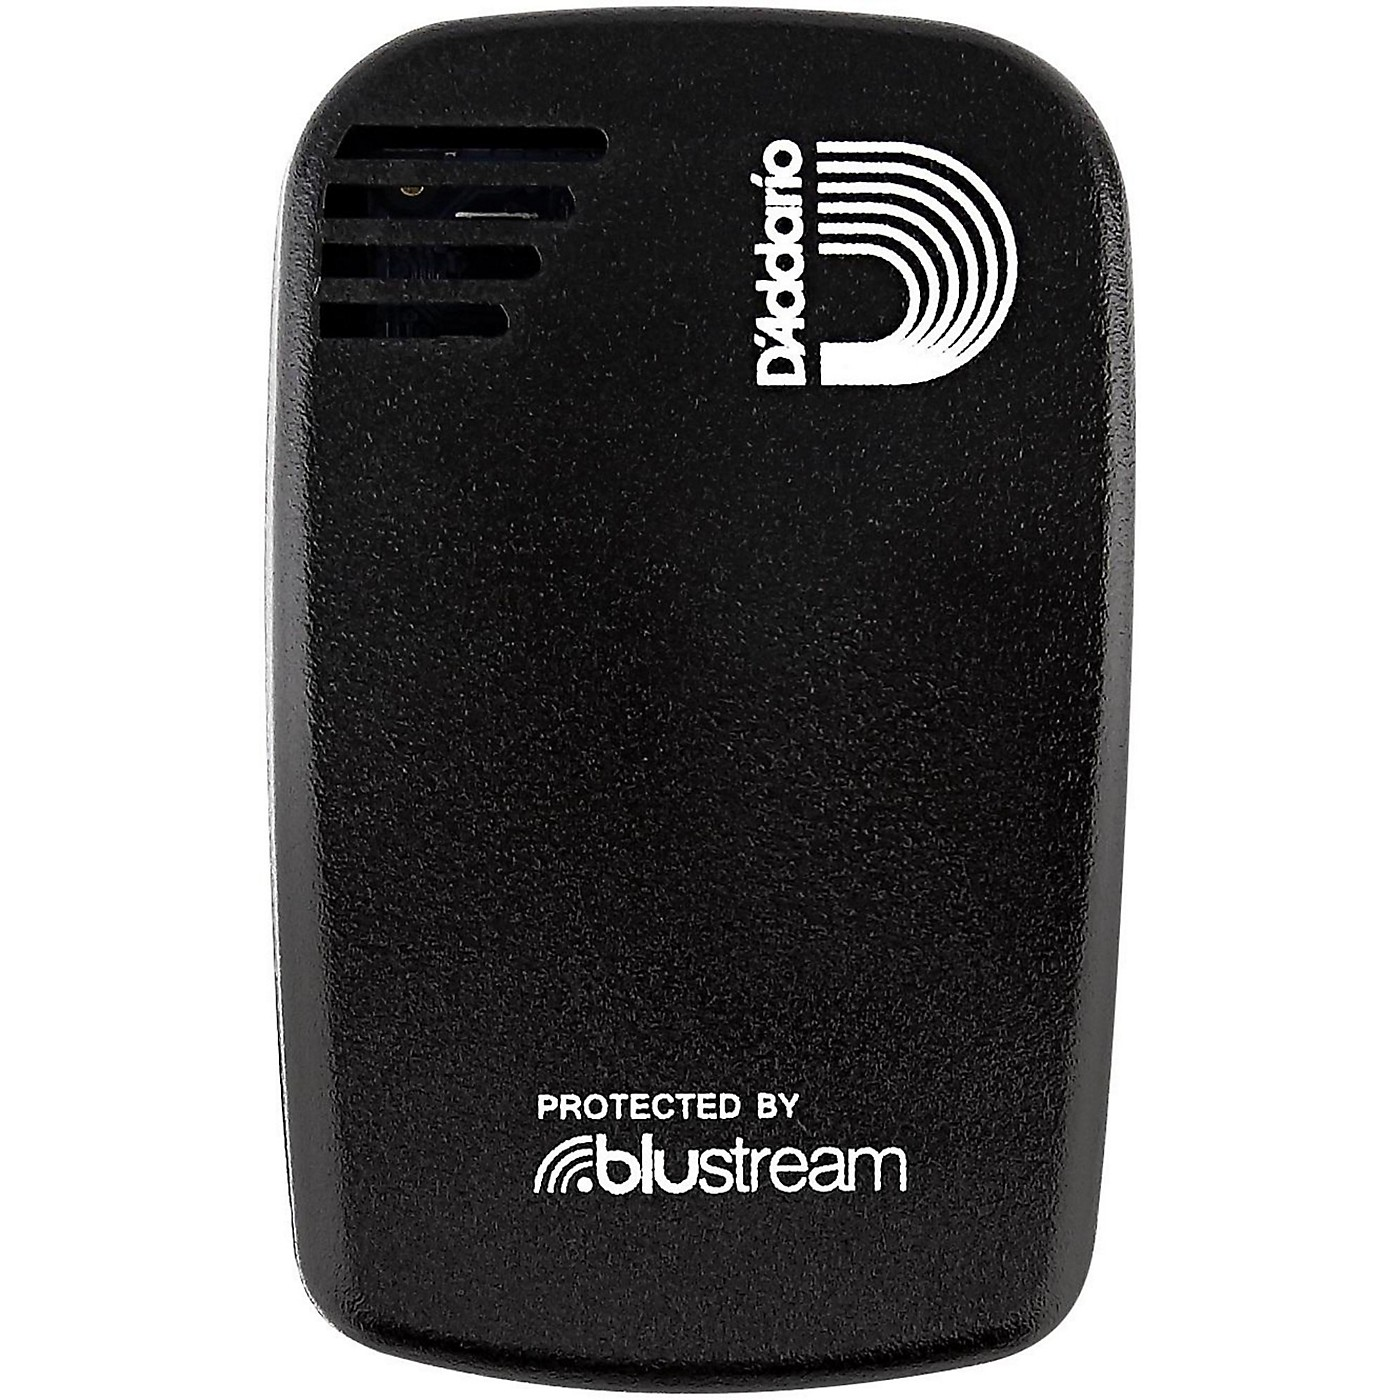 D'Addario Planet Waves Humiditrak Bluetooth Humidity and Temperature Sensor thumbnail